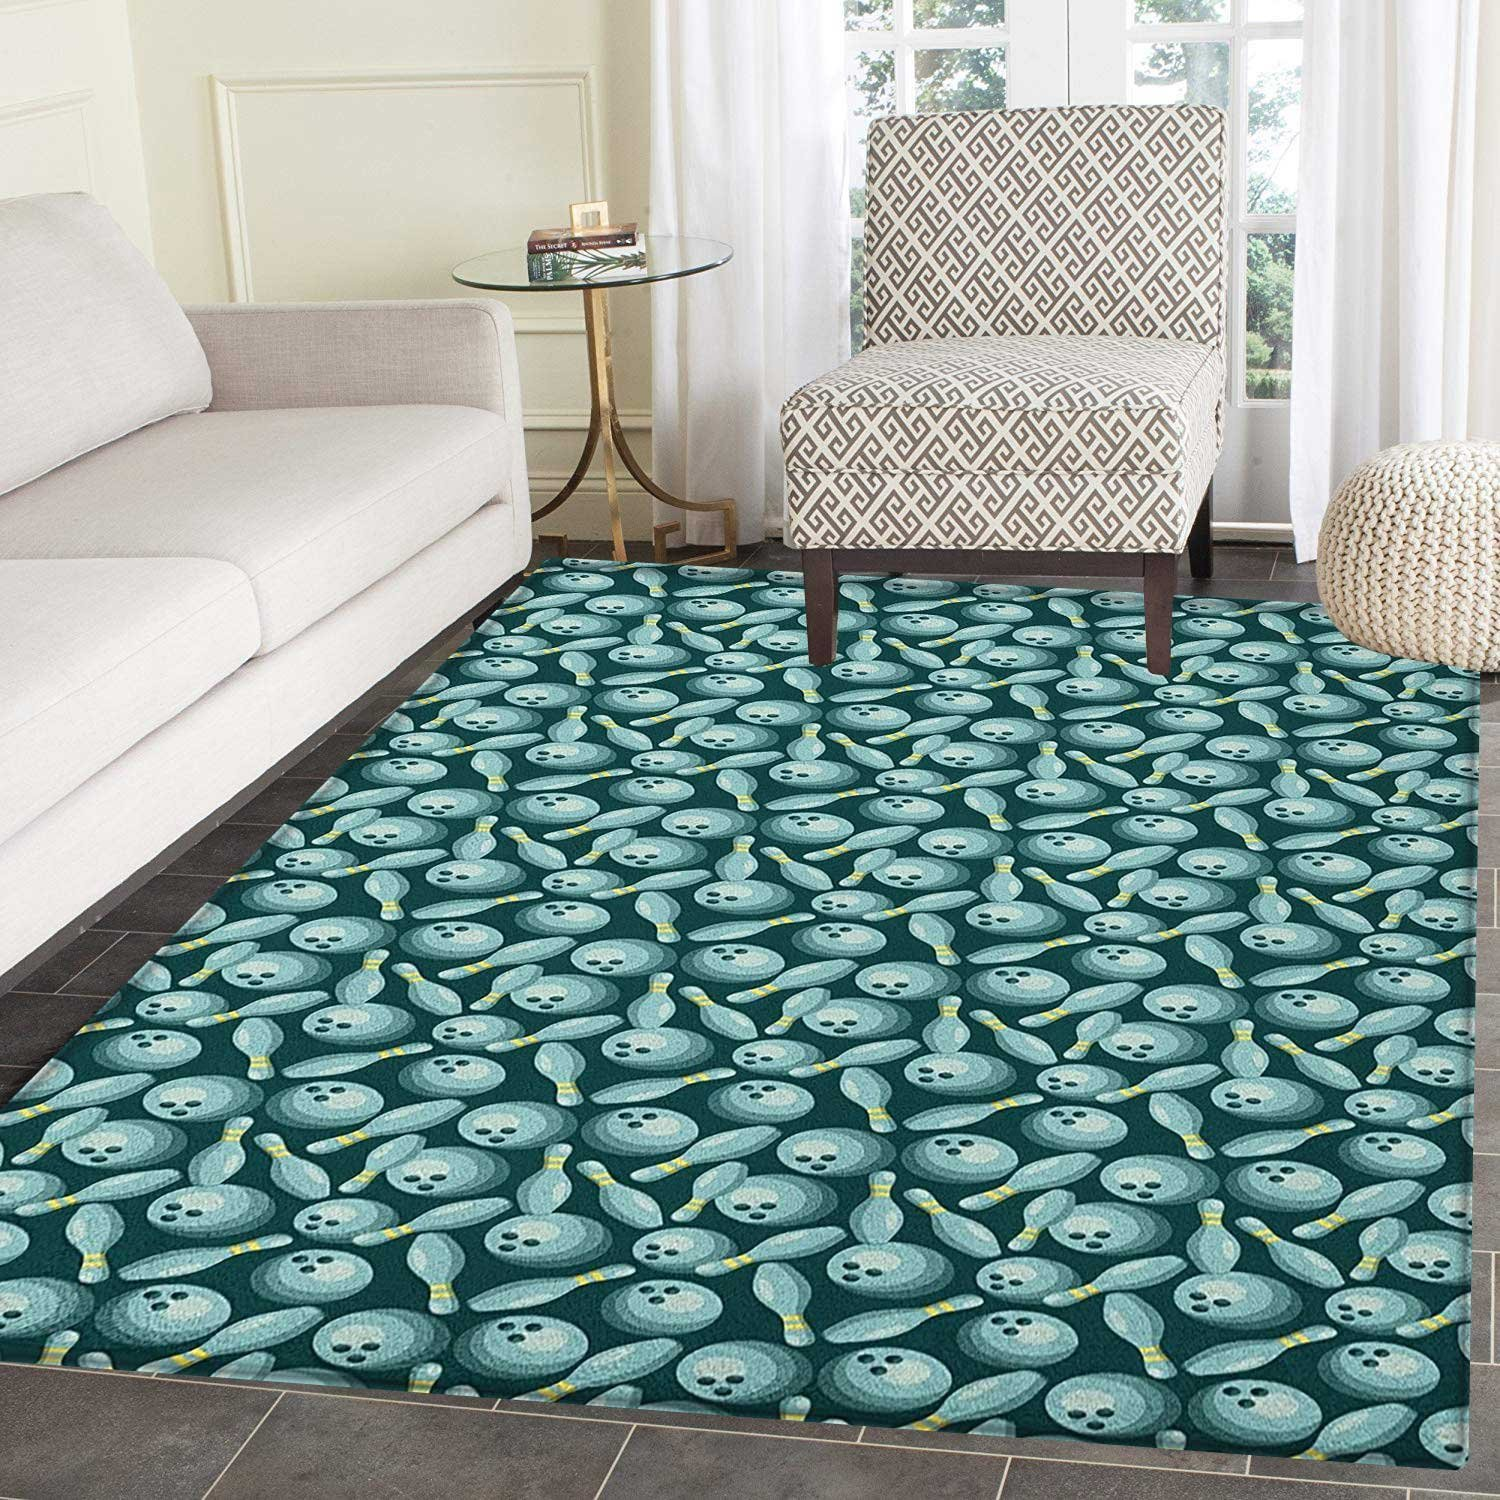 Grey and Turquoise Bedroom Ideas Beautiful Amazon Bowling Rugs for Bedroom Scattered Skittles